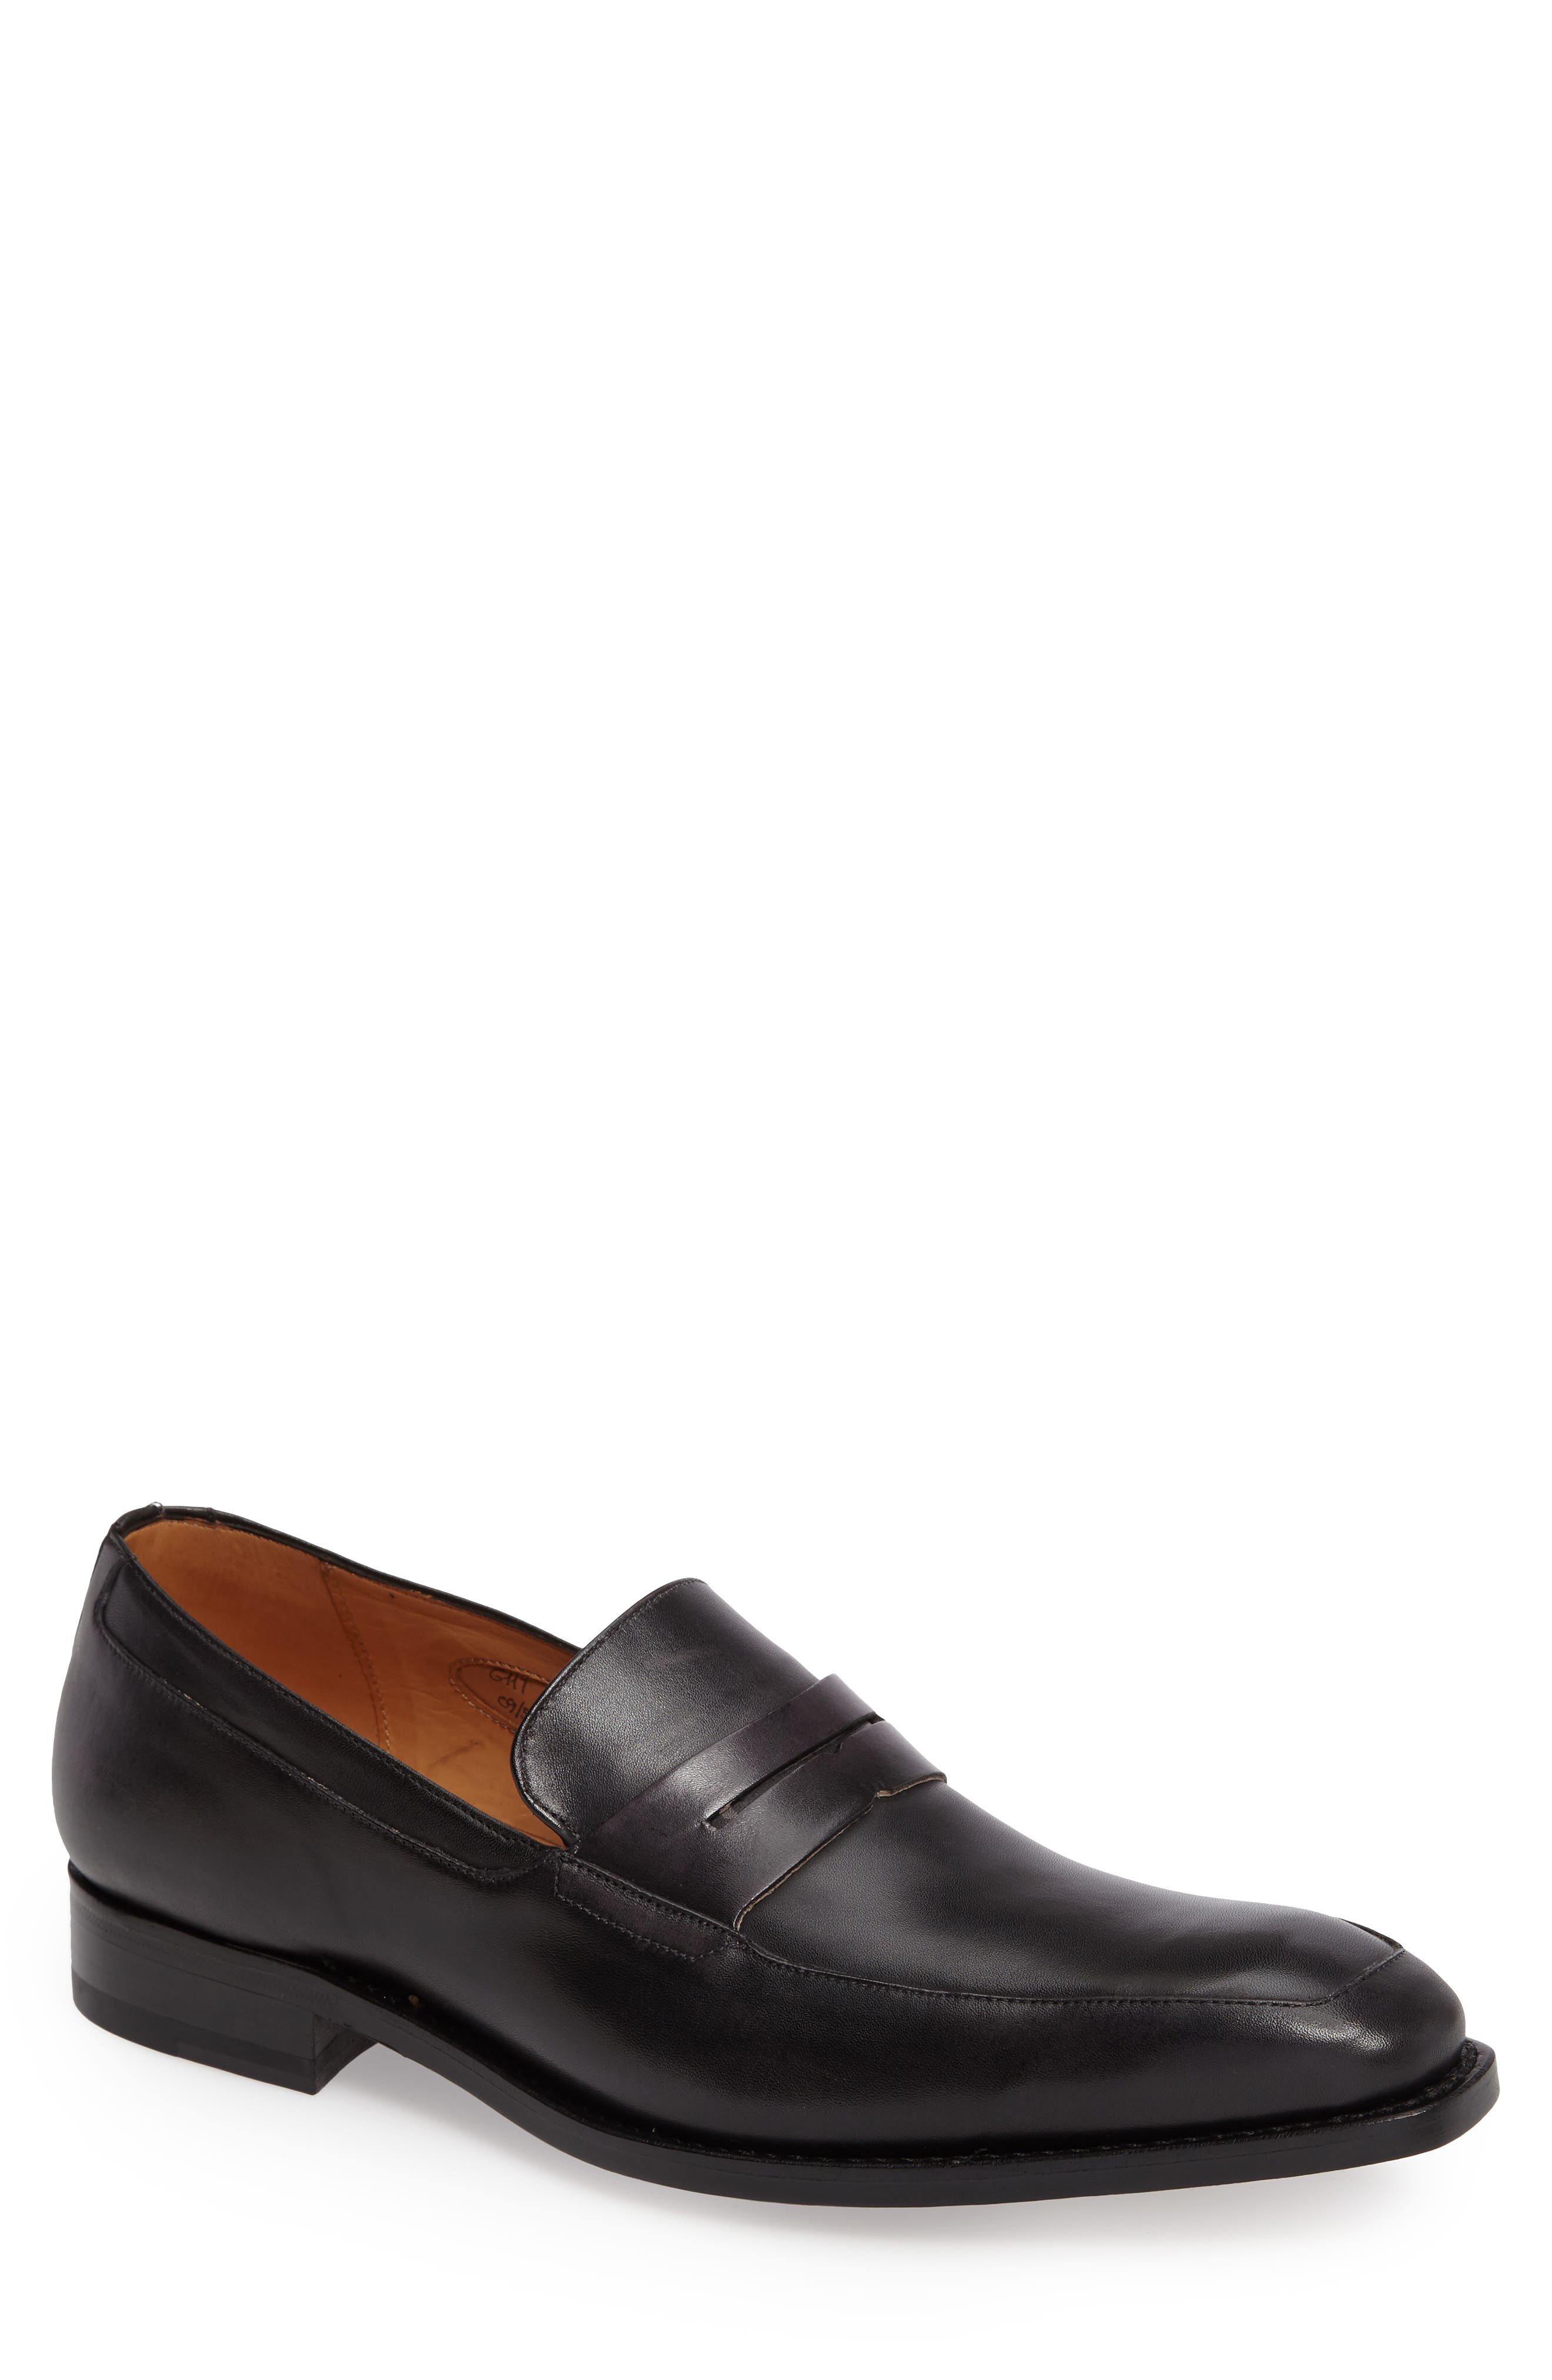 Impronta by Mezlan G117 Penny Loafer (Men)